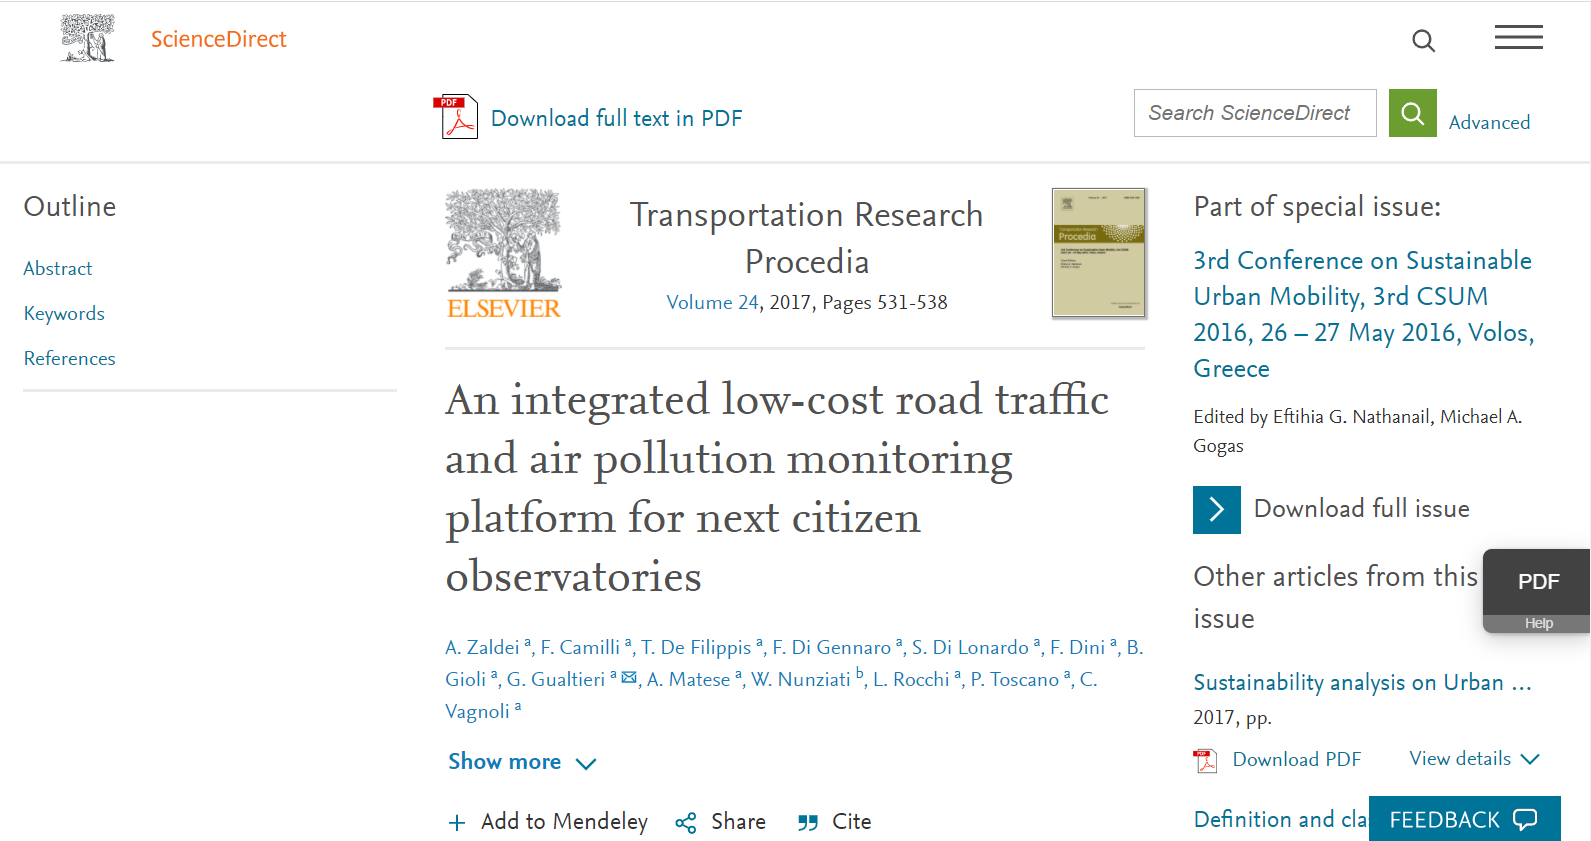 An integrated low-cost road traffic and air pollution monitoring platform for next citizen observatories